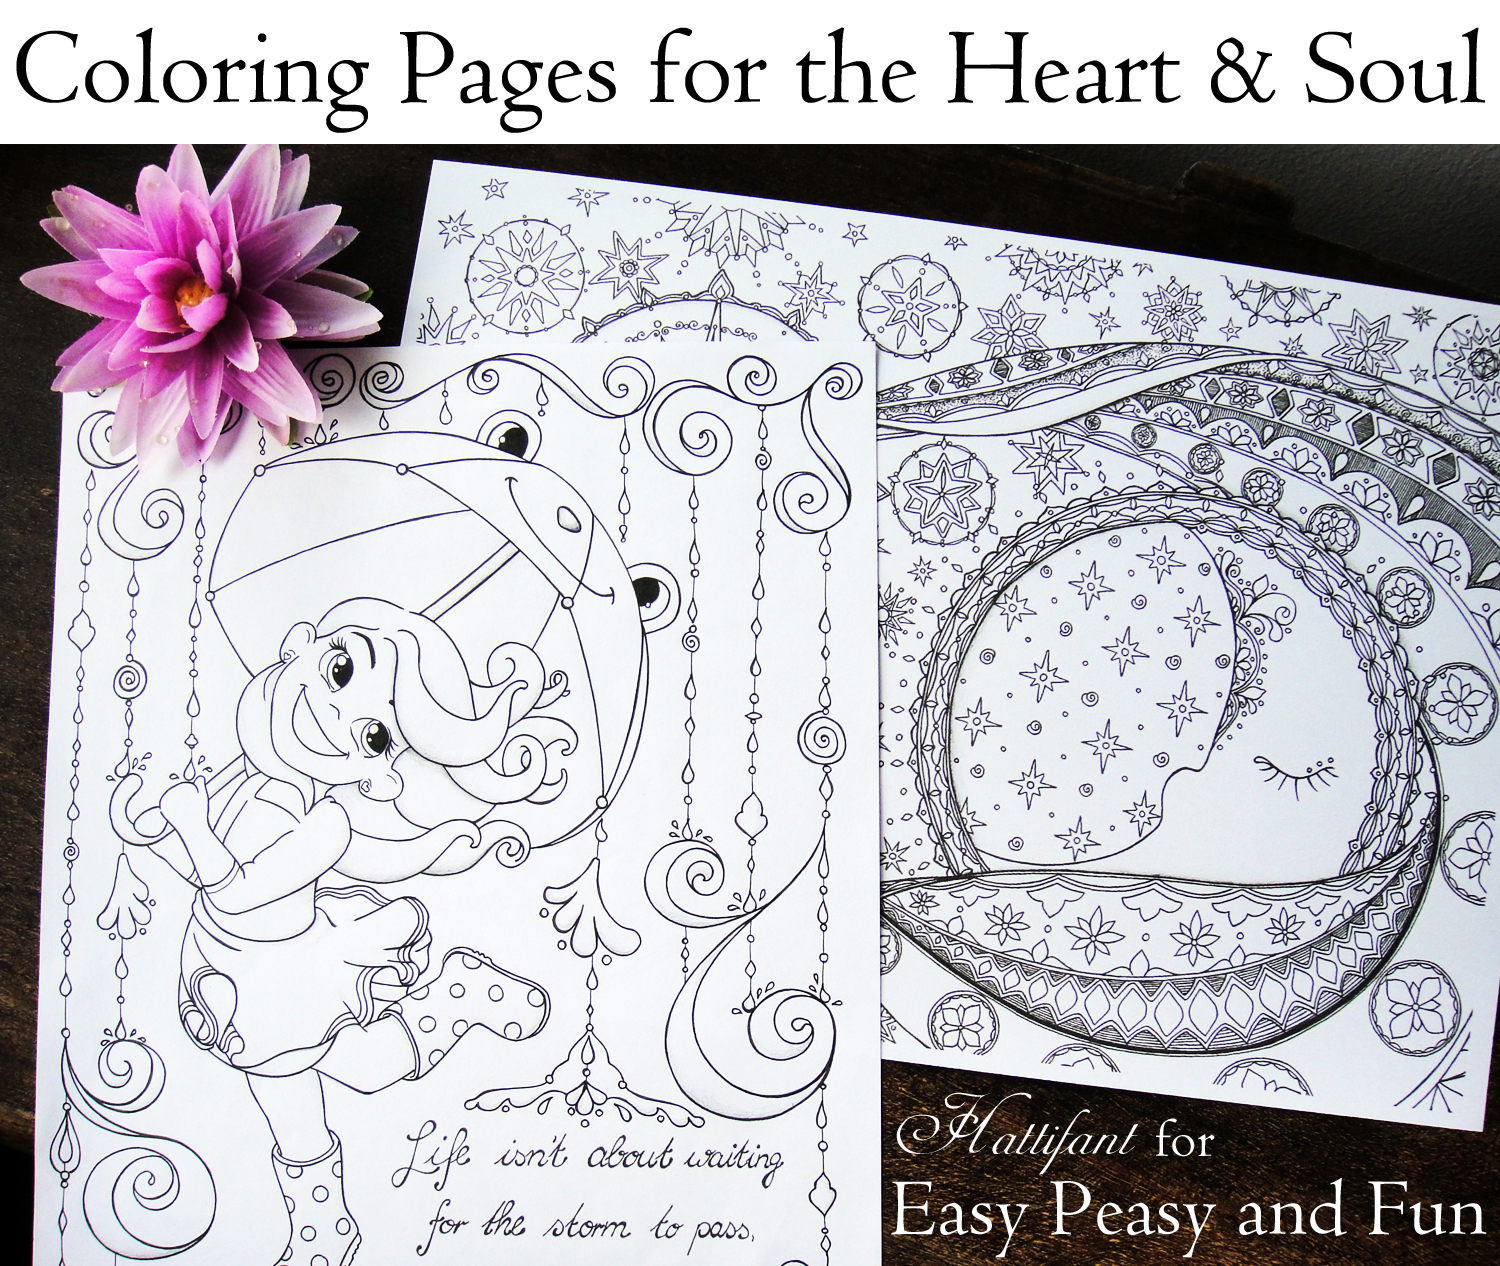 Hattifant's Coloring Pages for Heart and Soul